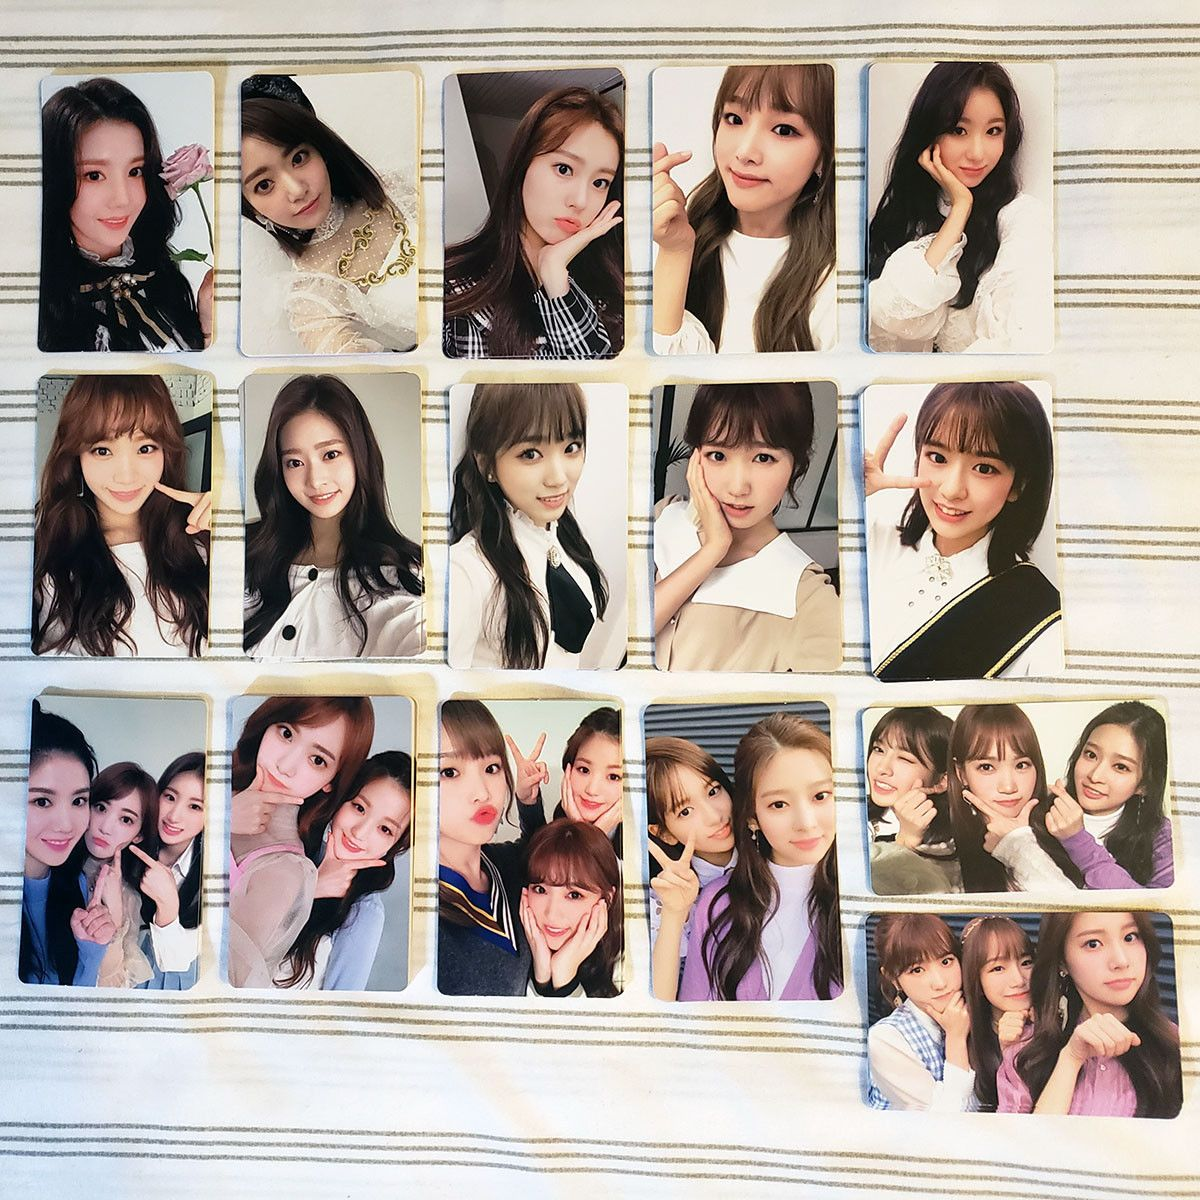 IZ*ONE IZONE KPOP - Debut Album - COLOR*IZ official